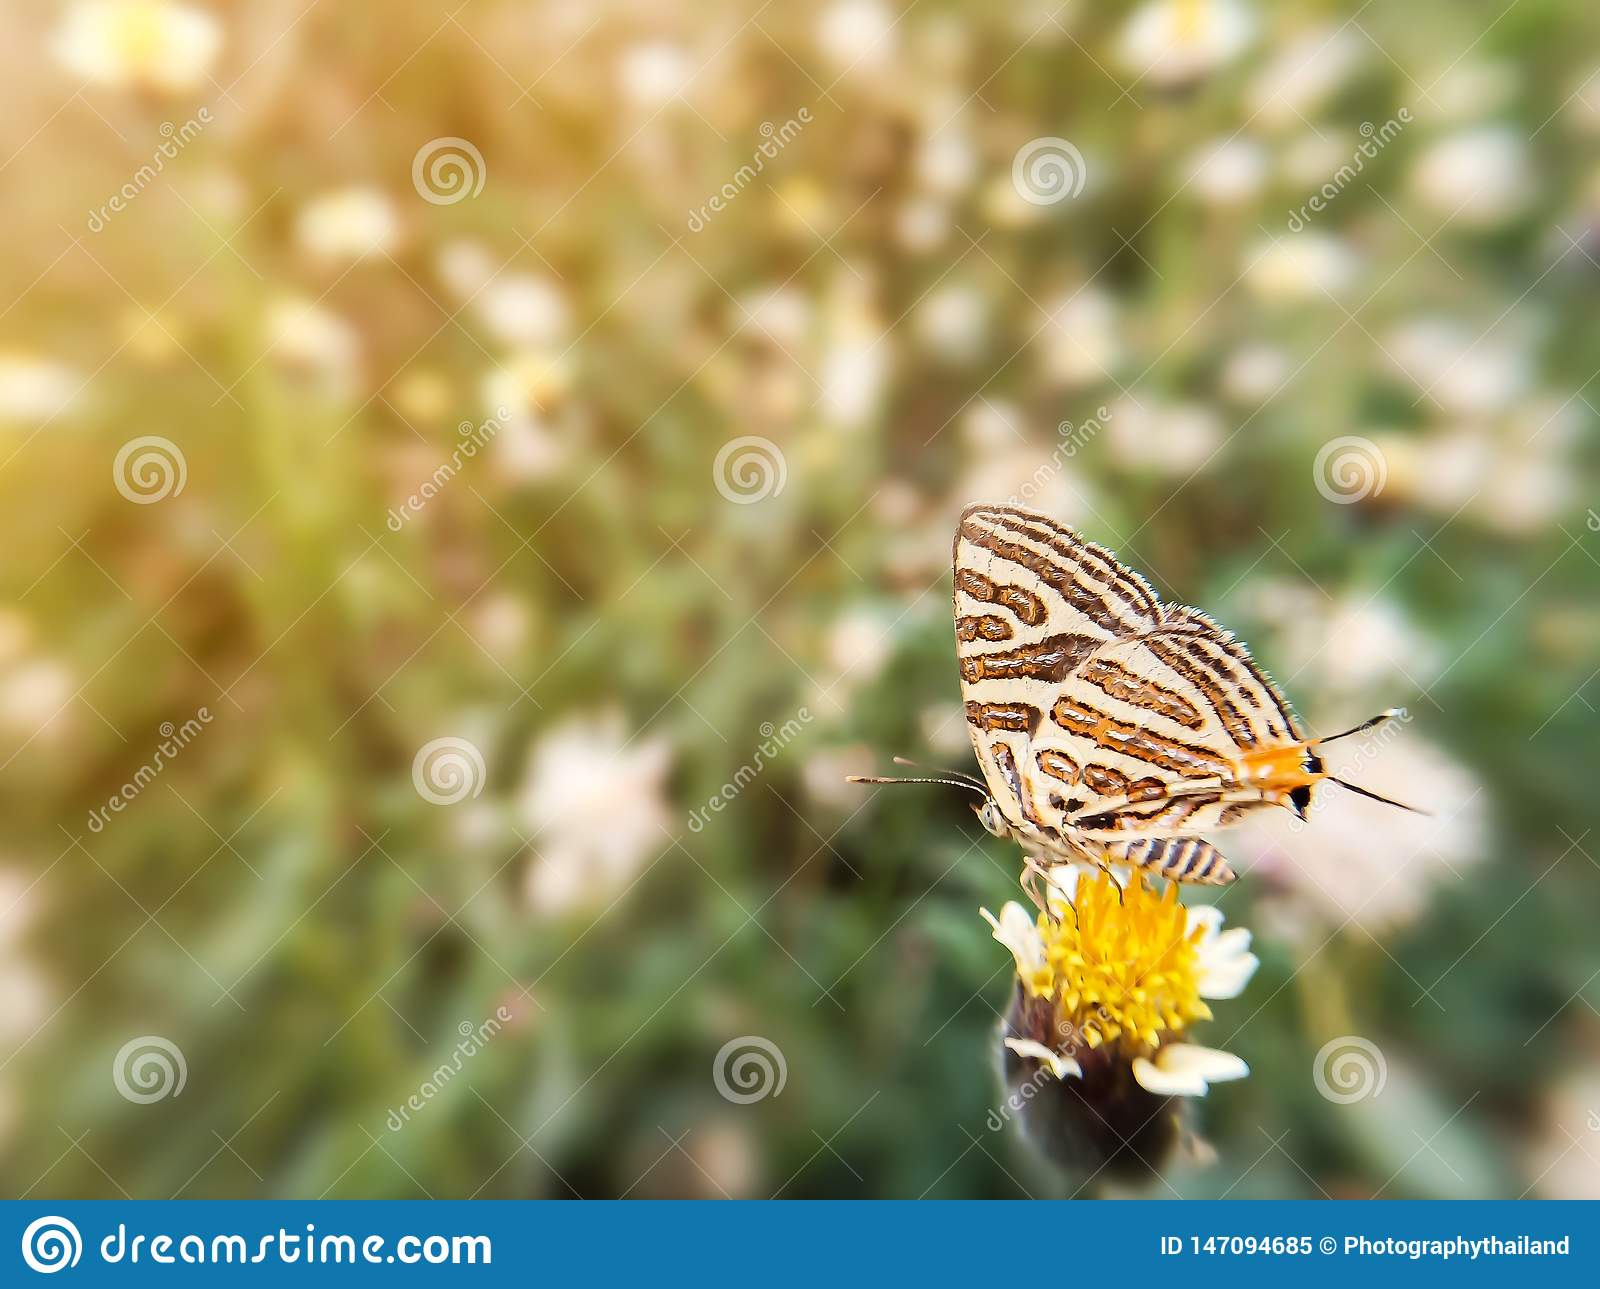 Beautiful butterfly on flower grass and sunlight during the daytime. Blurred image natural background.